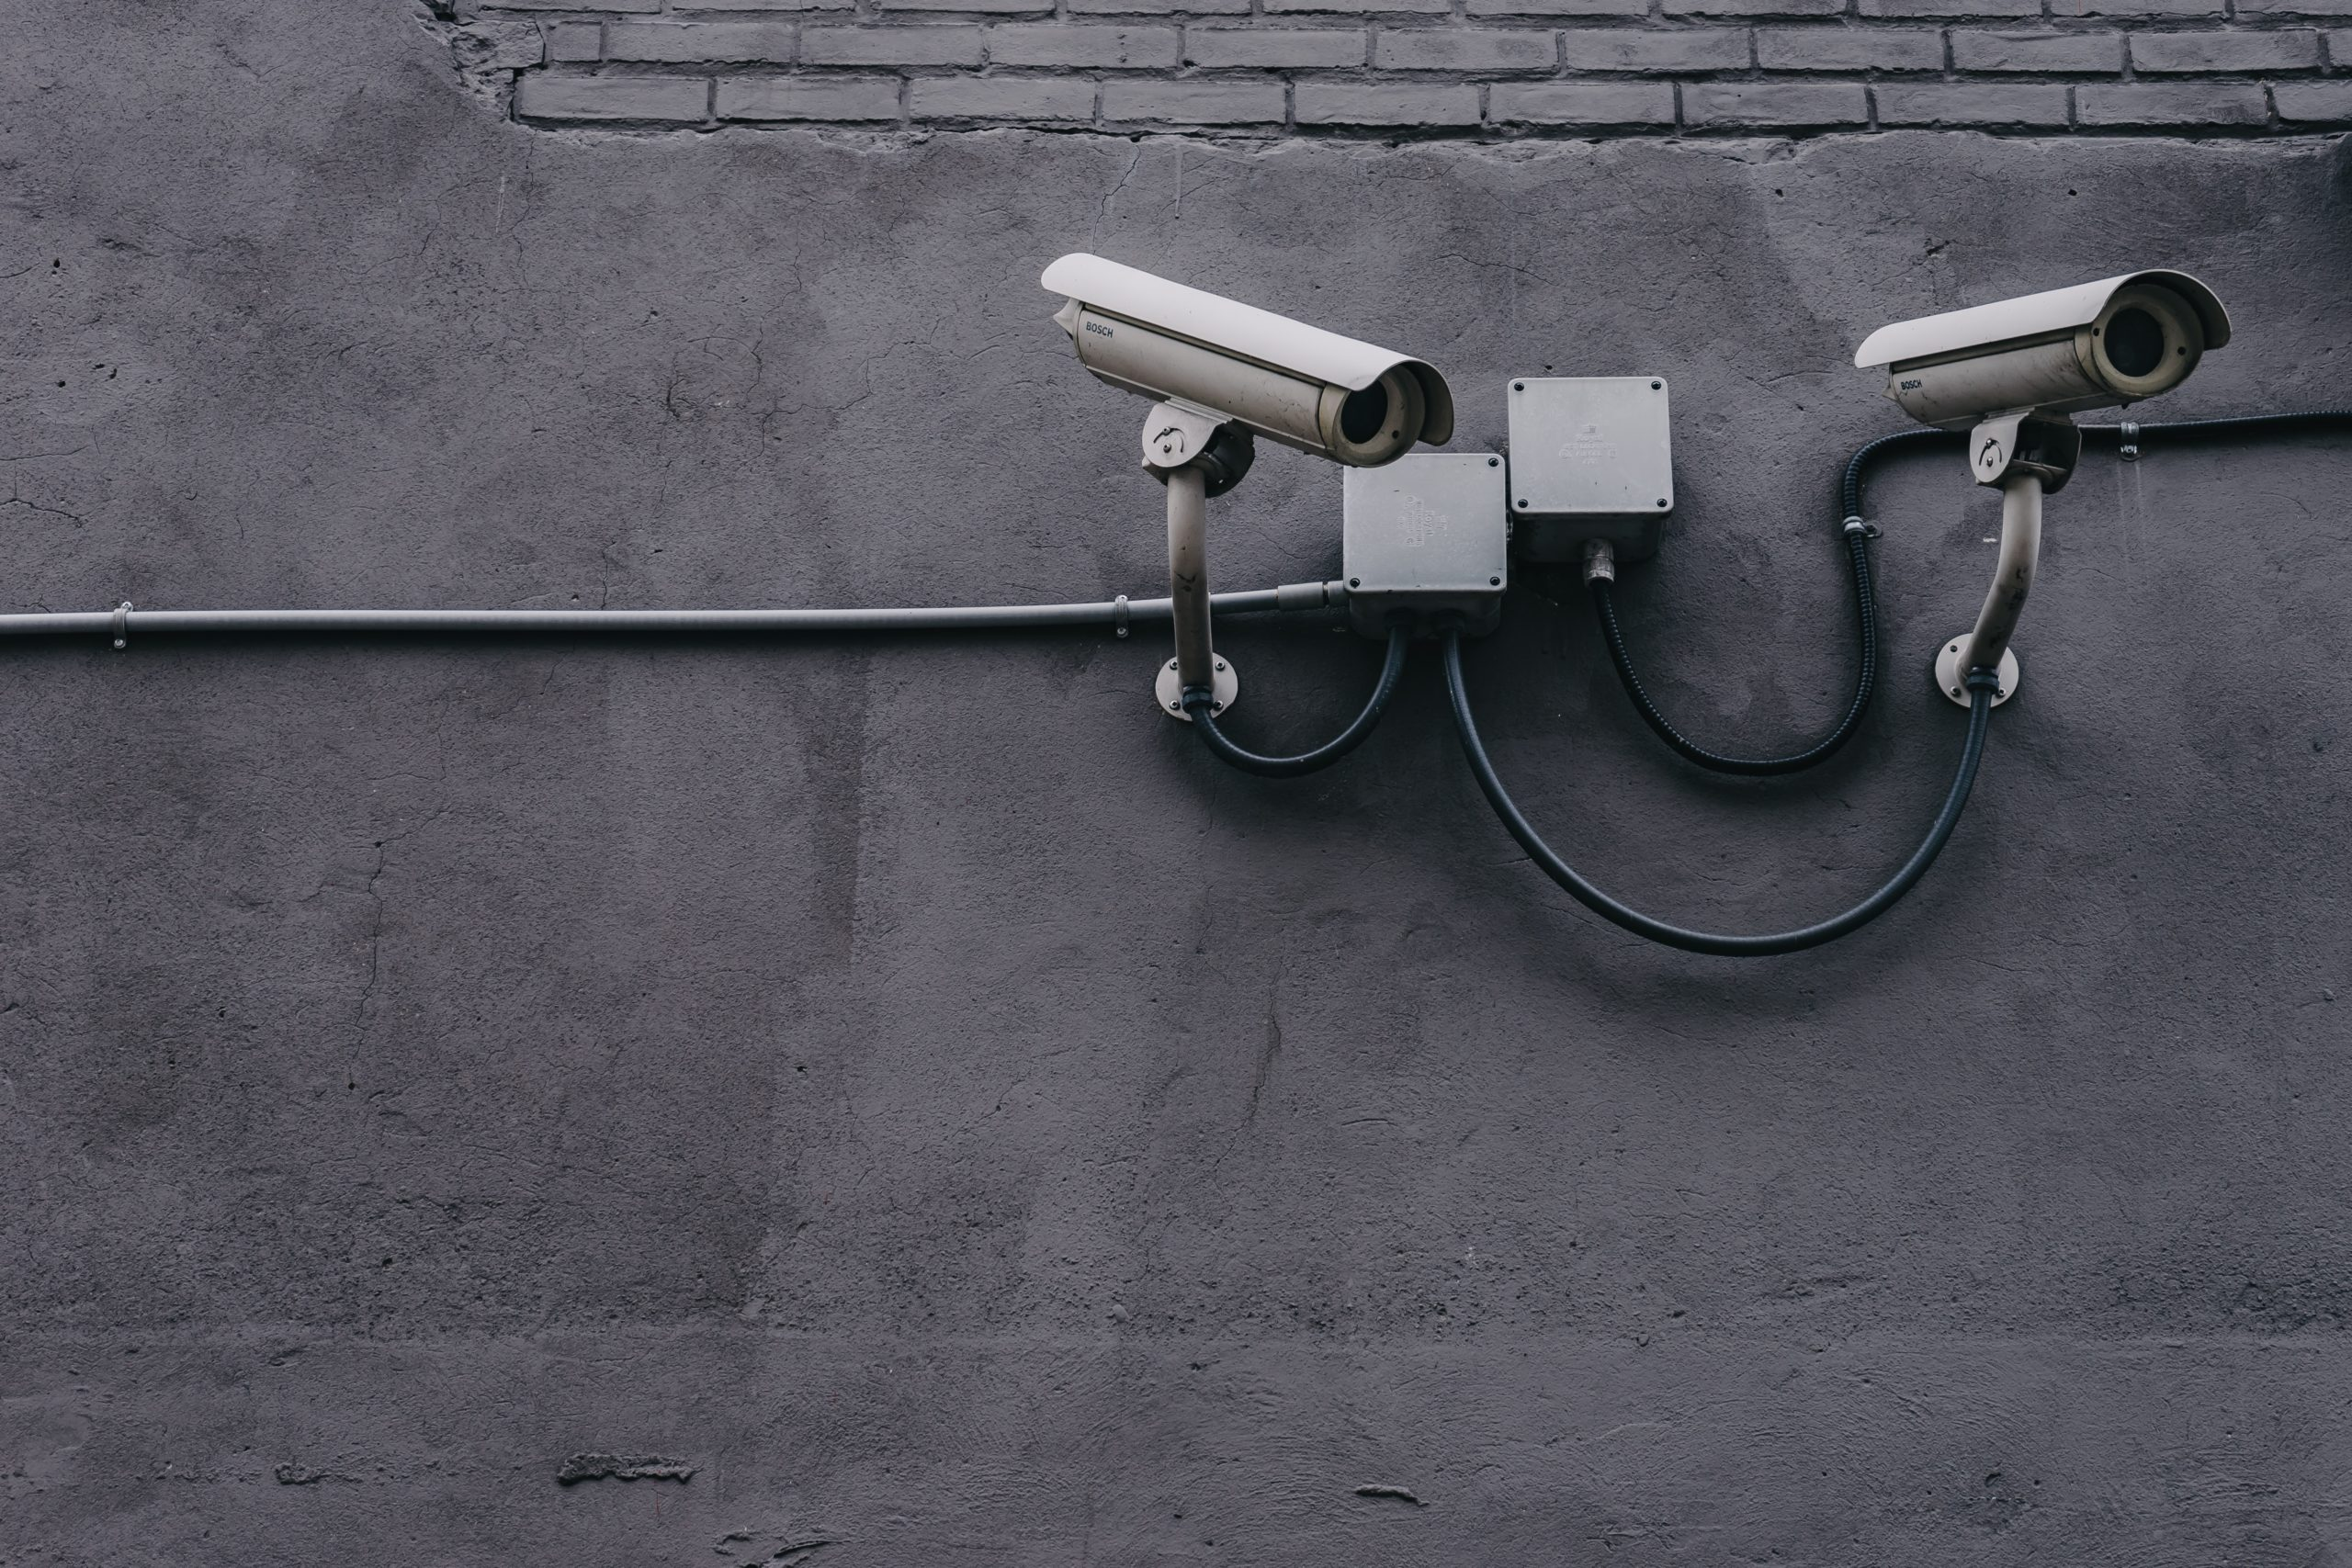 Two security cameras point to the right against a gray background.